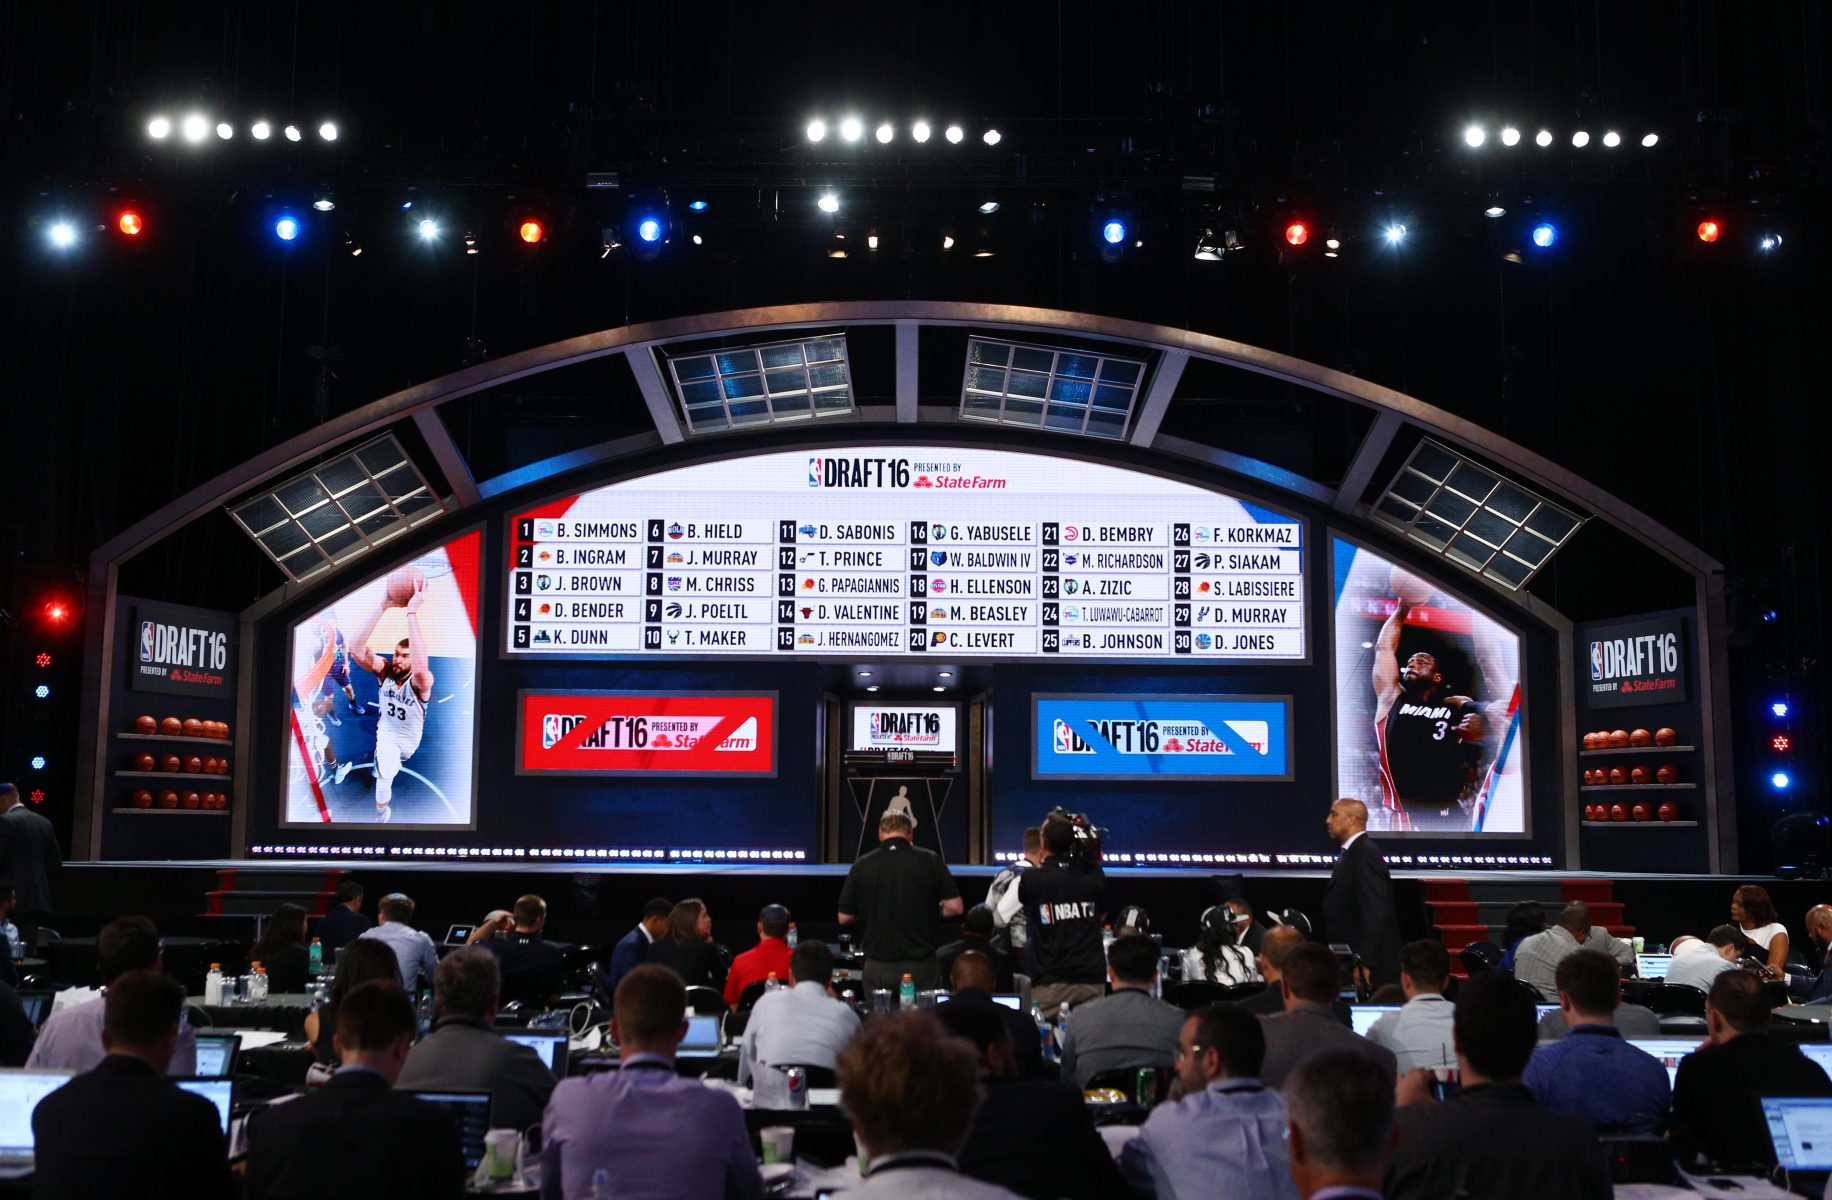 New York Knicks: Takeaways From Phil Jackson's Past NBA Drafts 1